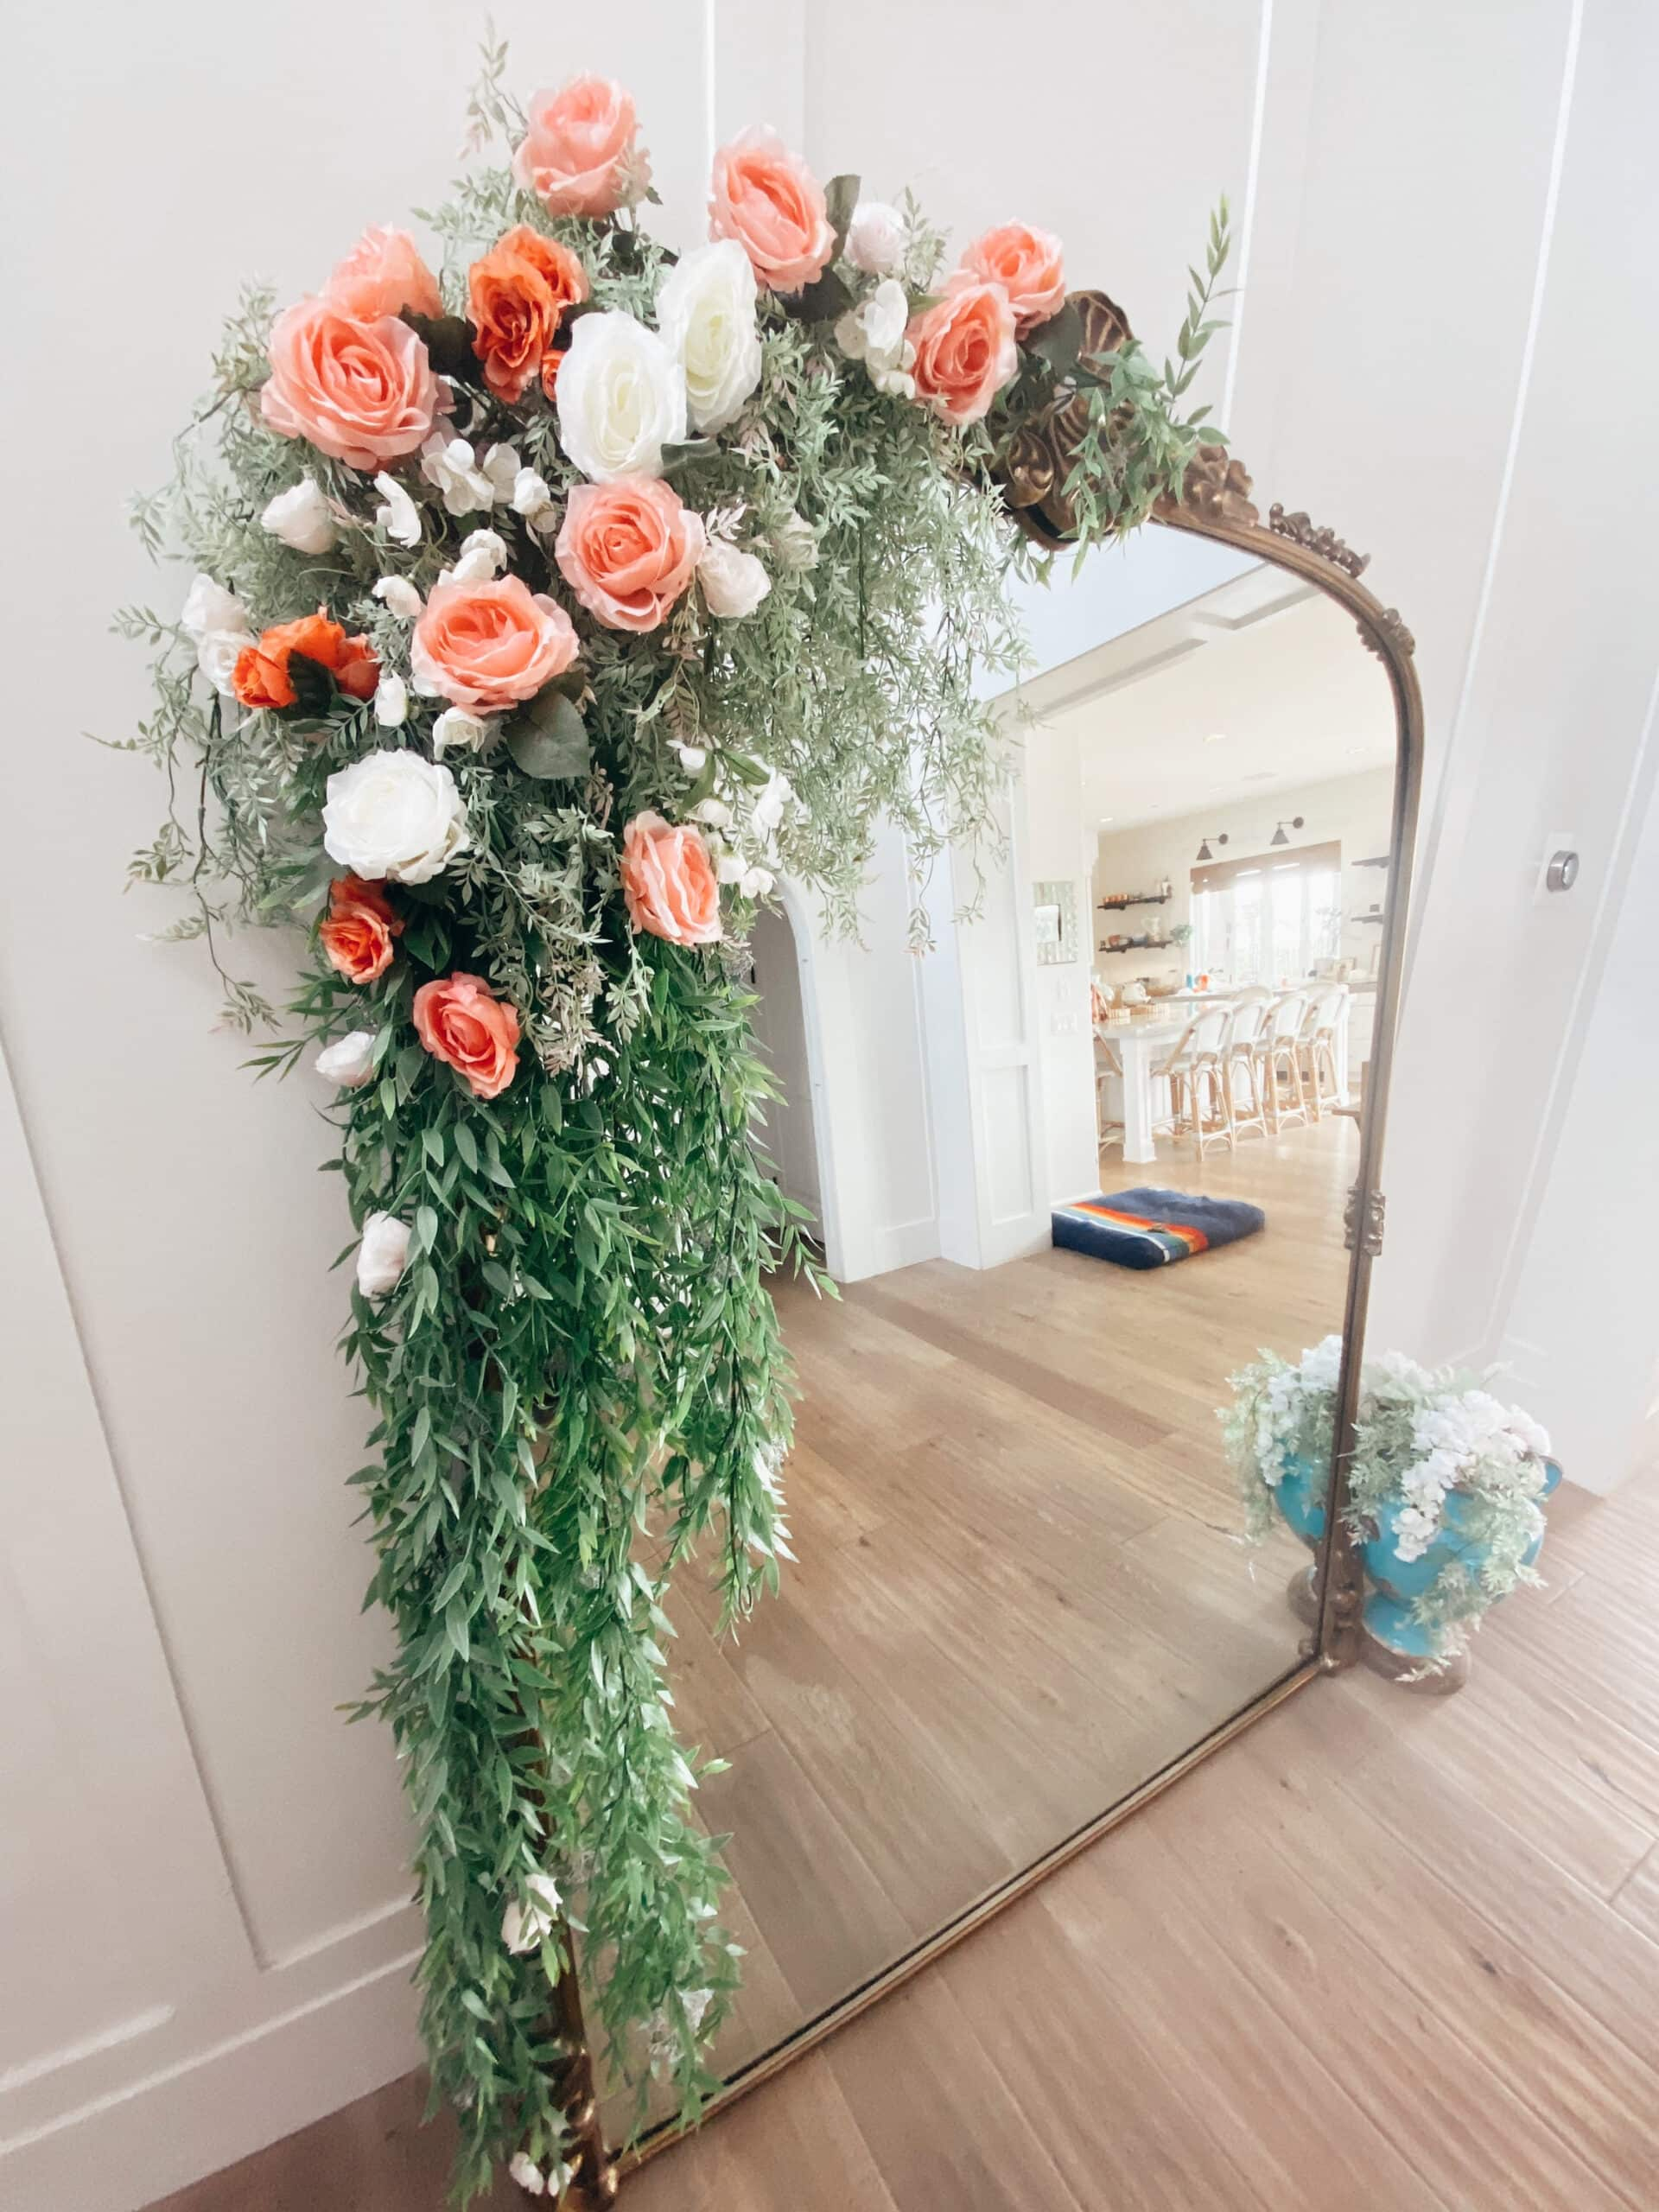 floral arrangement on mirror